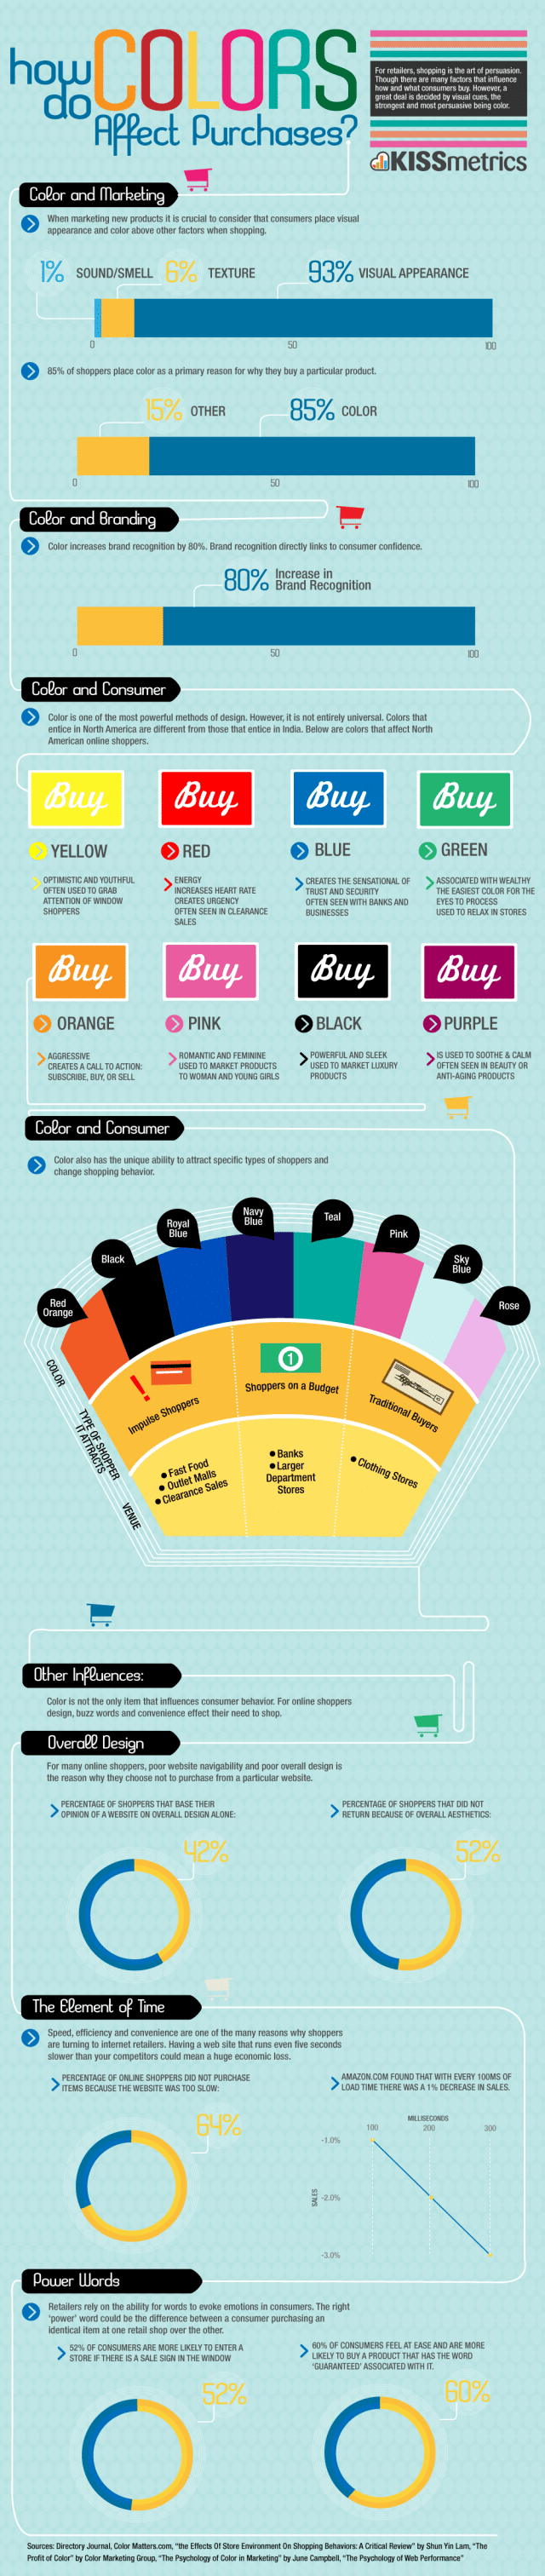 How Colors Affect Our Purchases